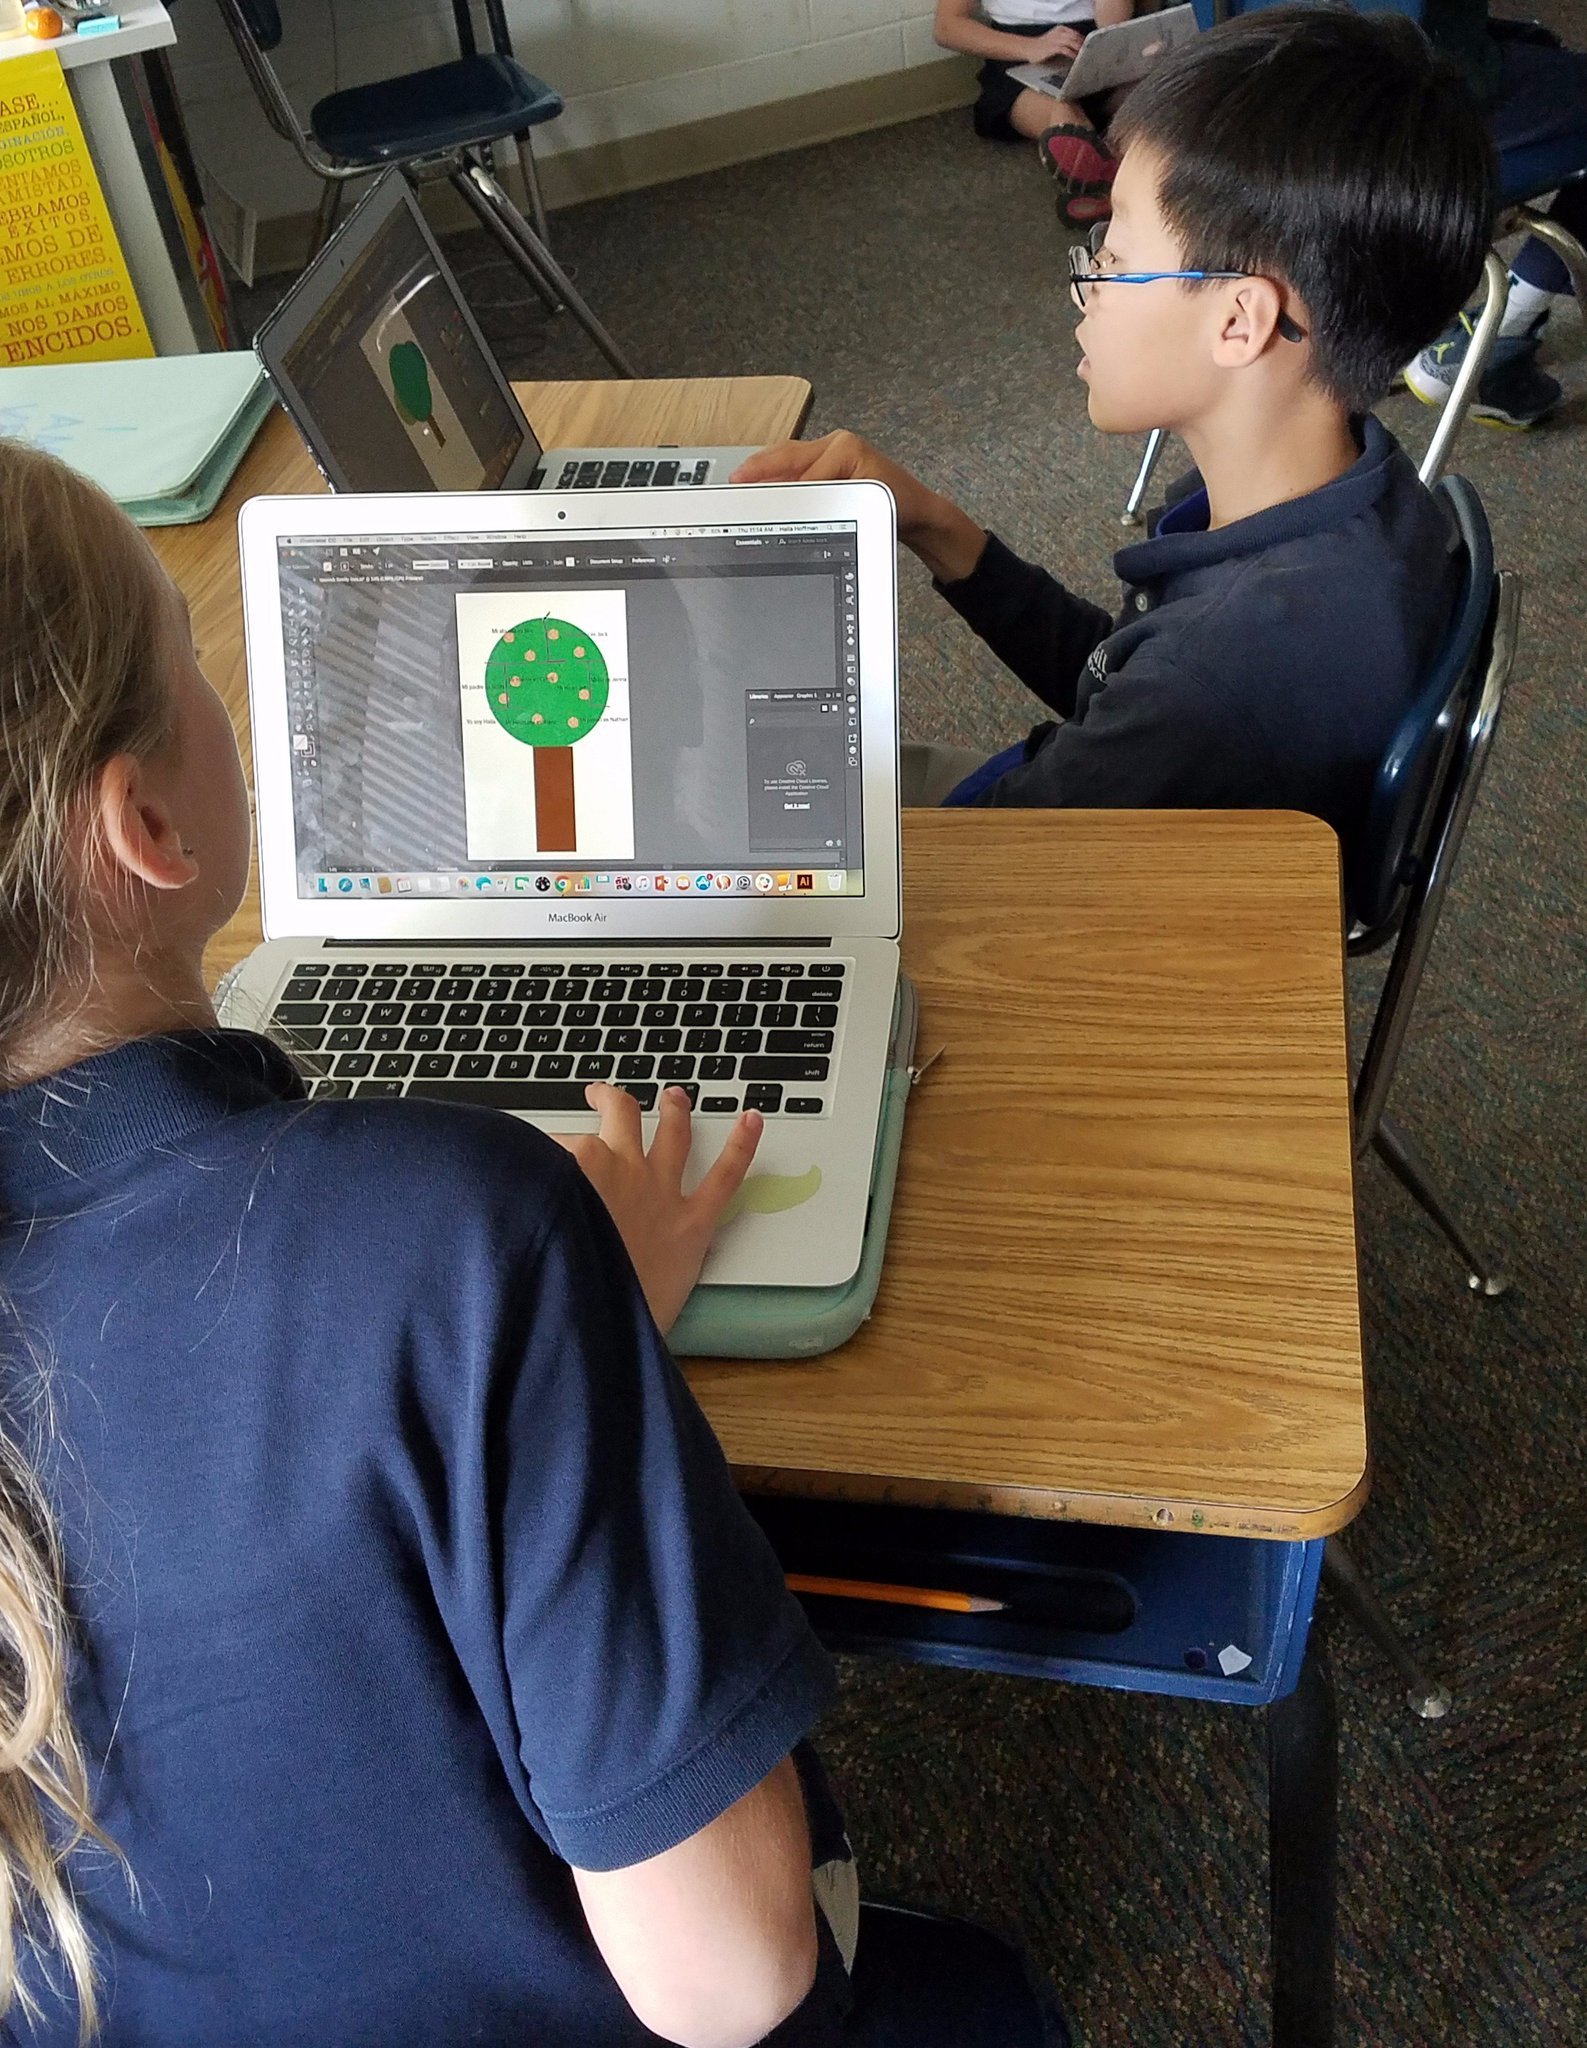 Students creating family trees on @Illustrator for their presentations. Thanks @peacefulpendant for collaborating with me! #myflinthill https://t.co/Ae2Kw0eE0g